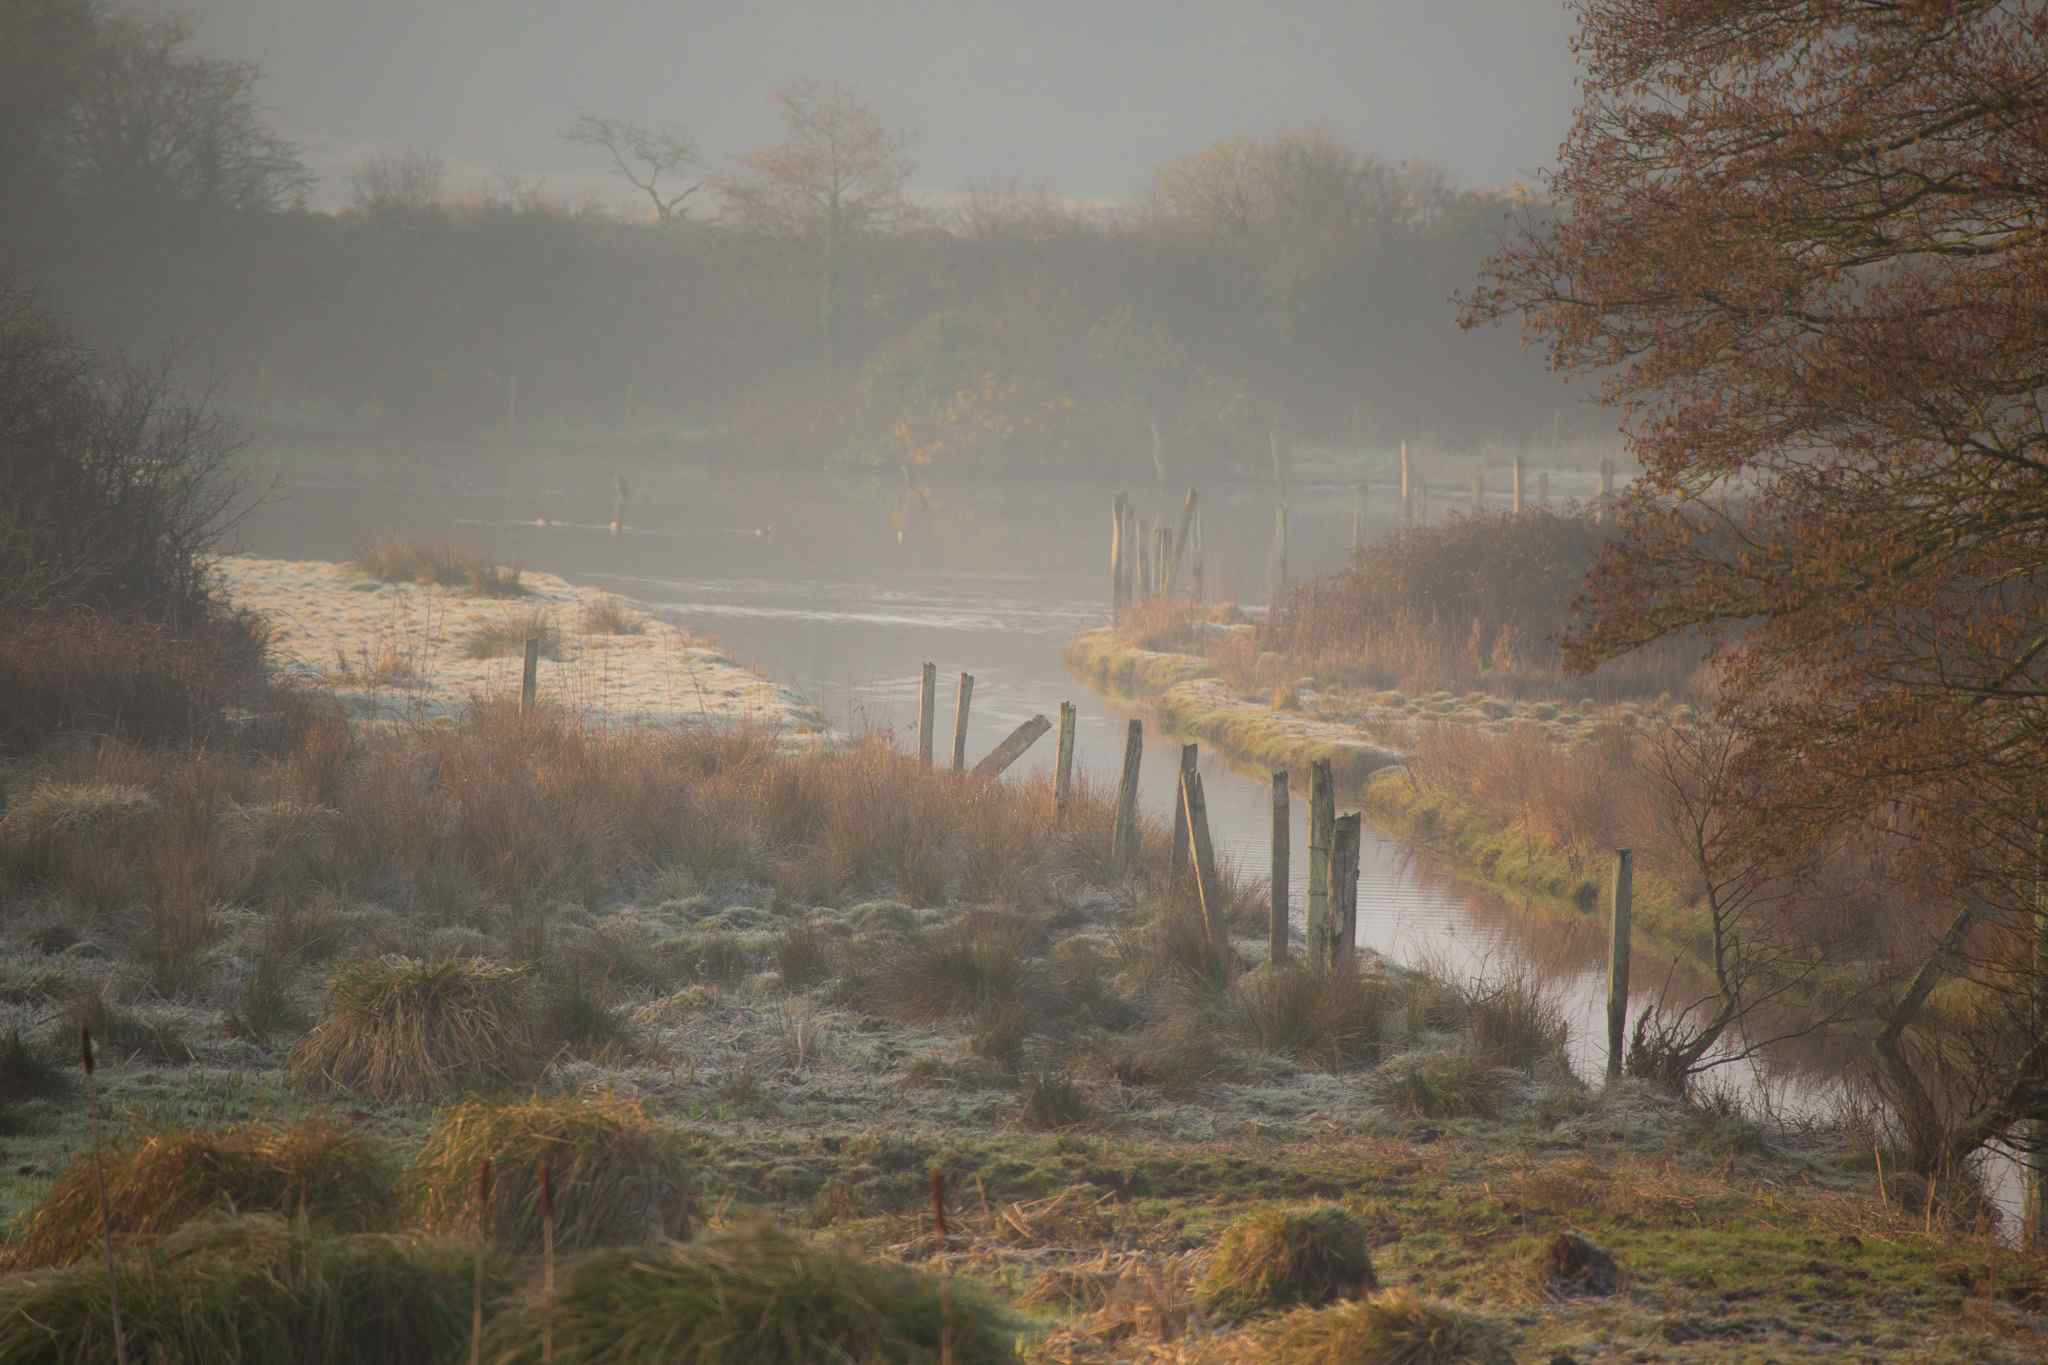 Early morning mist over the Salt Marsh